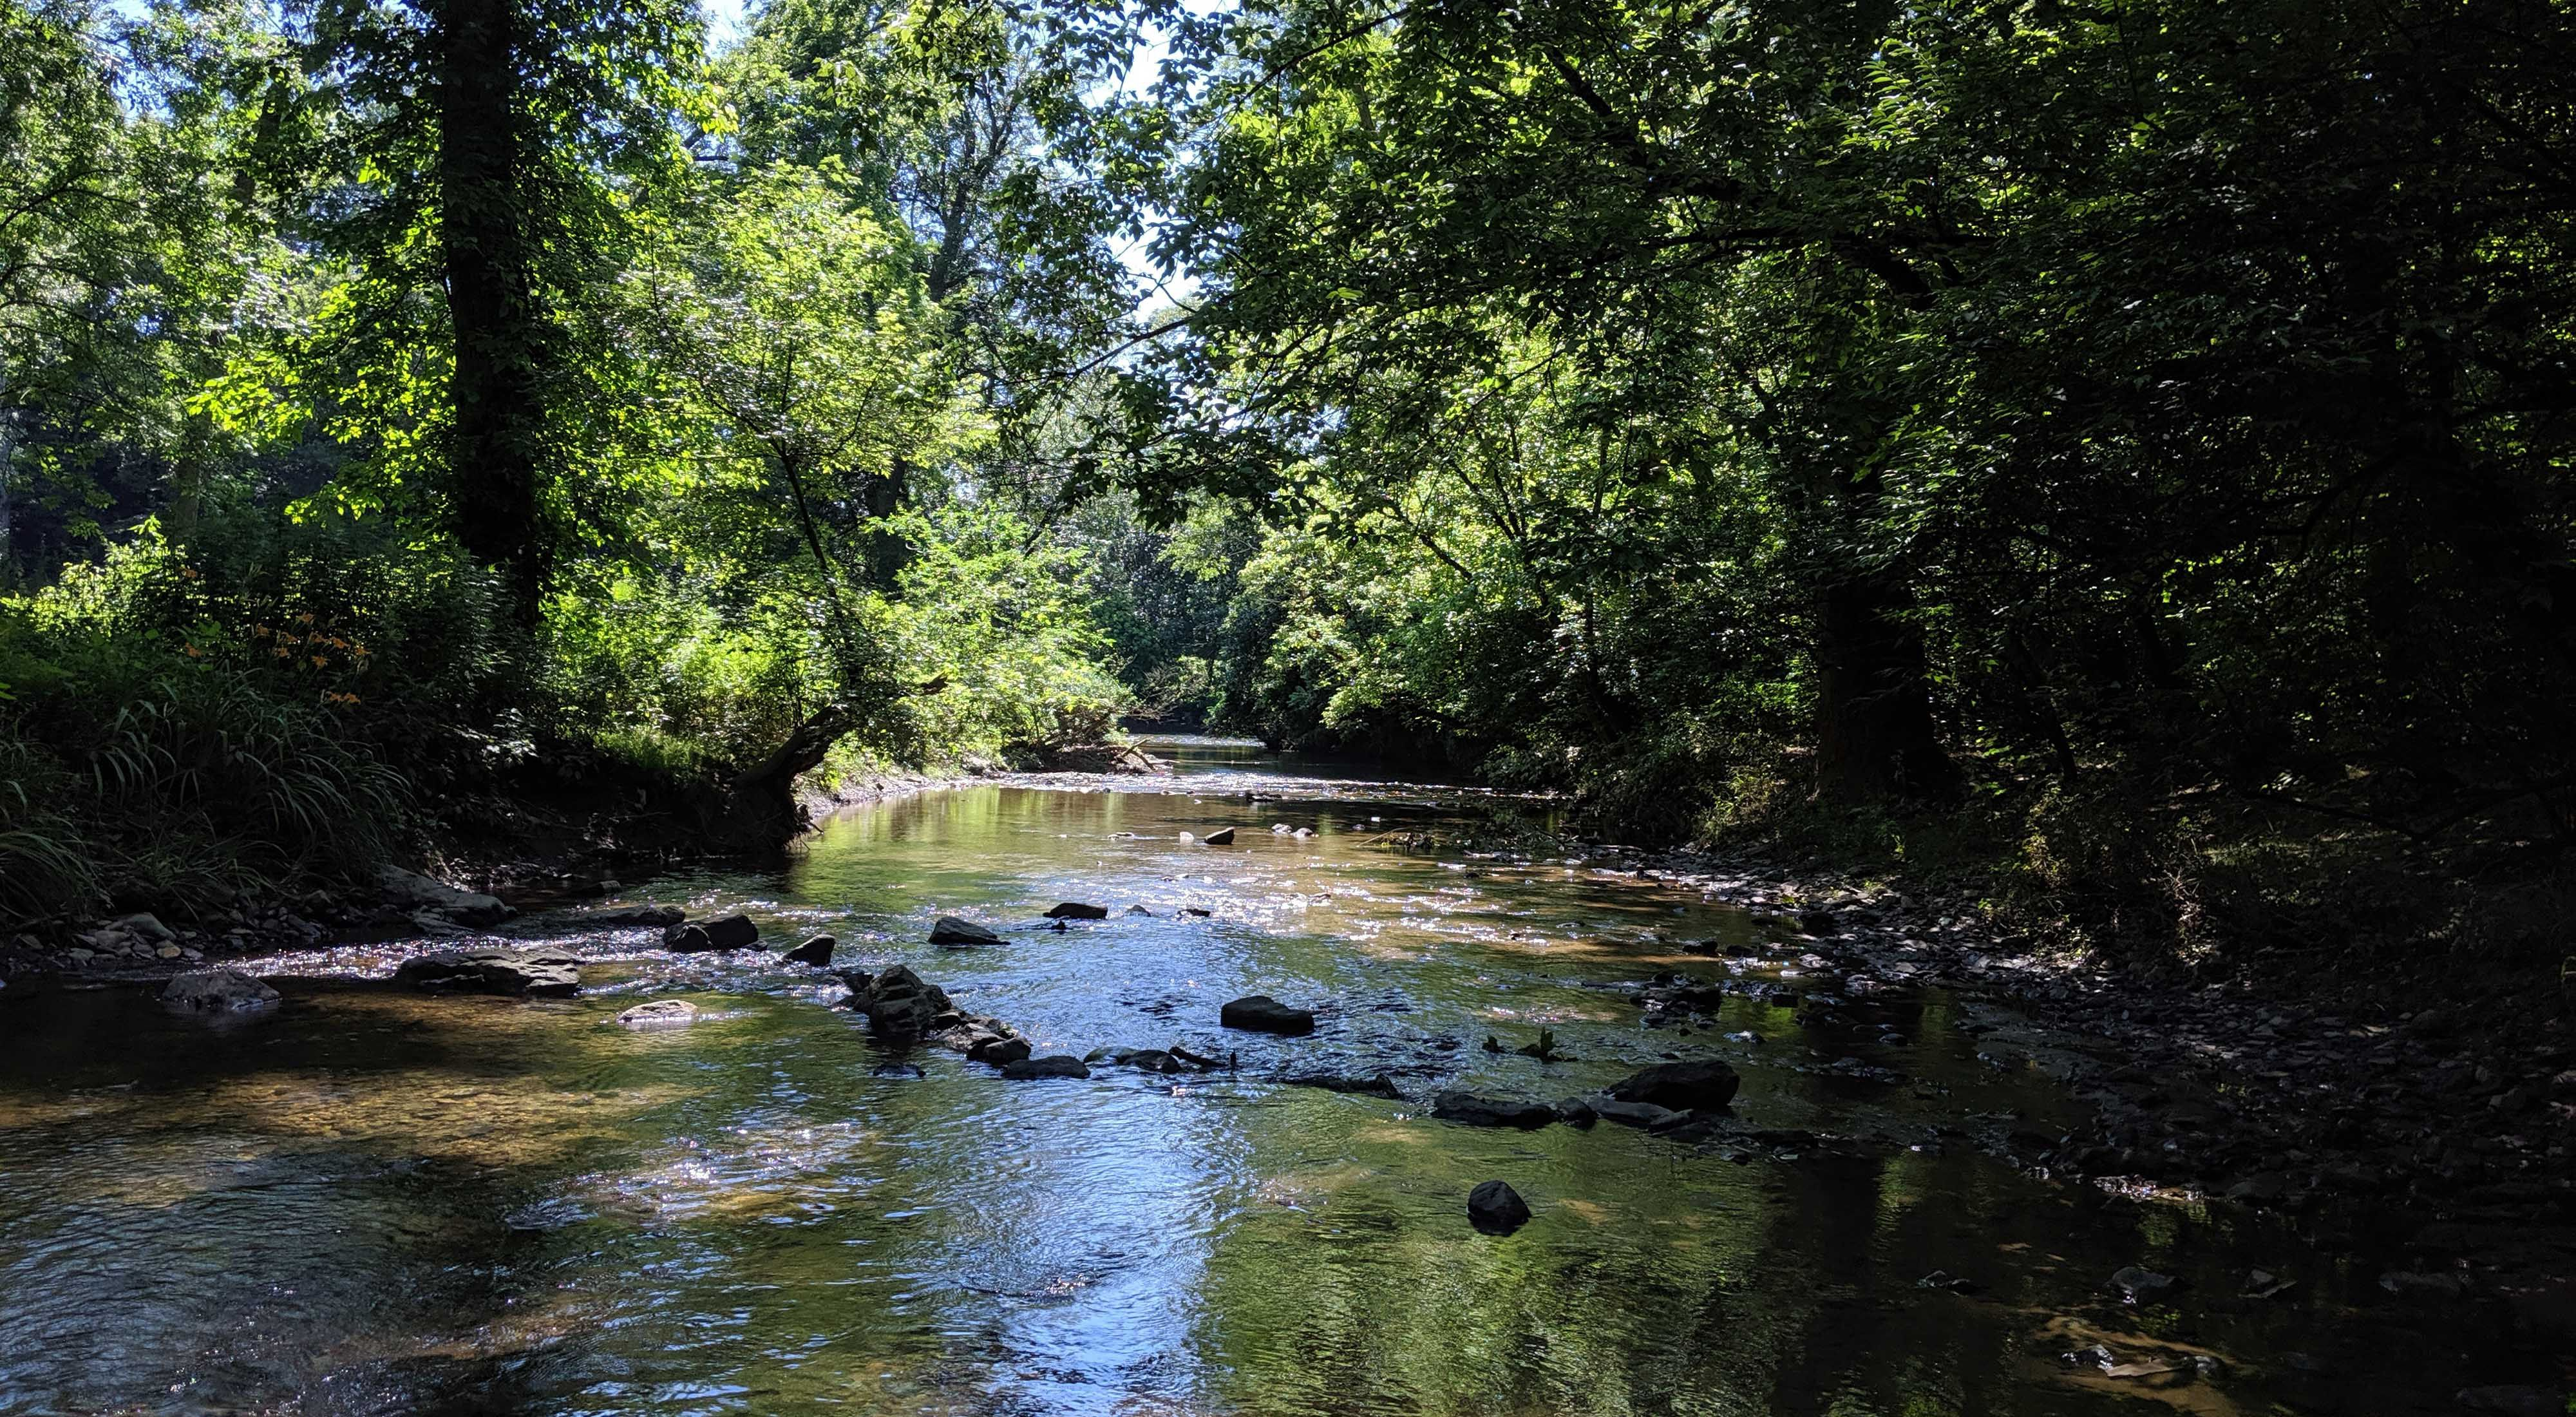 Large rocks protrude above the water of a wide, shallow stream as it flows beneath the shade of a thick forest.